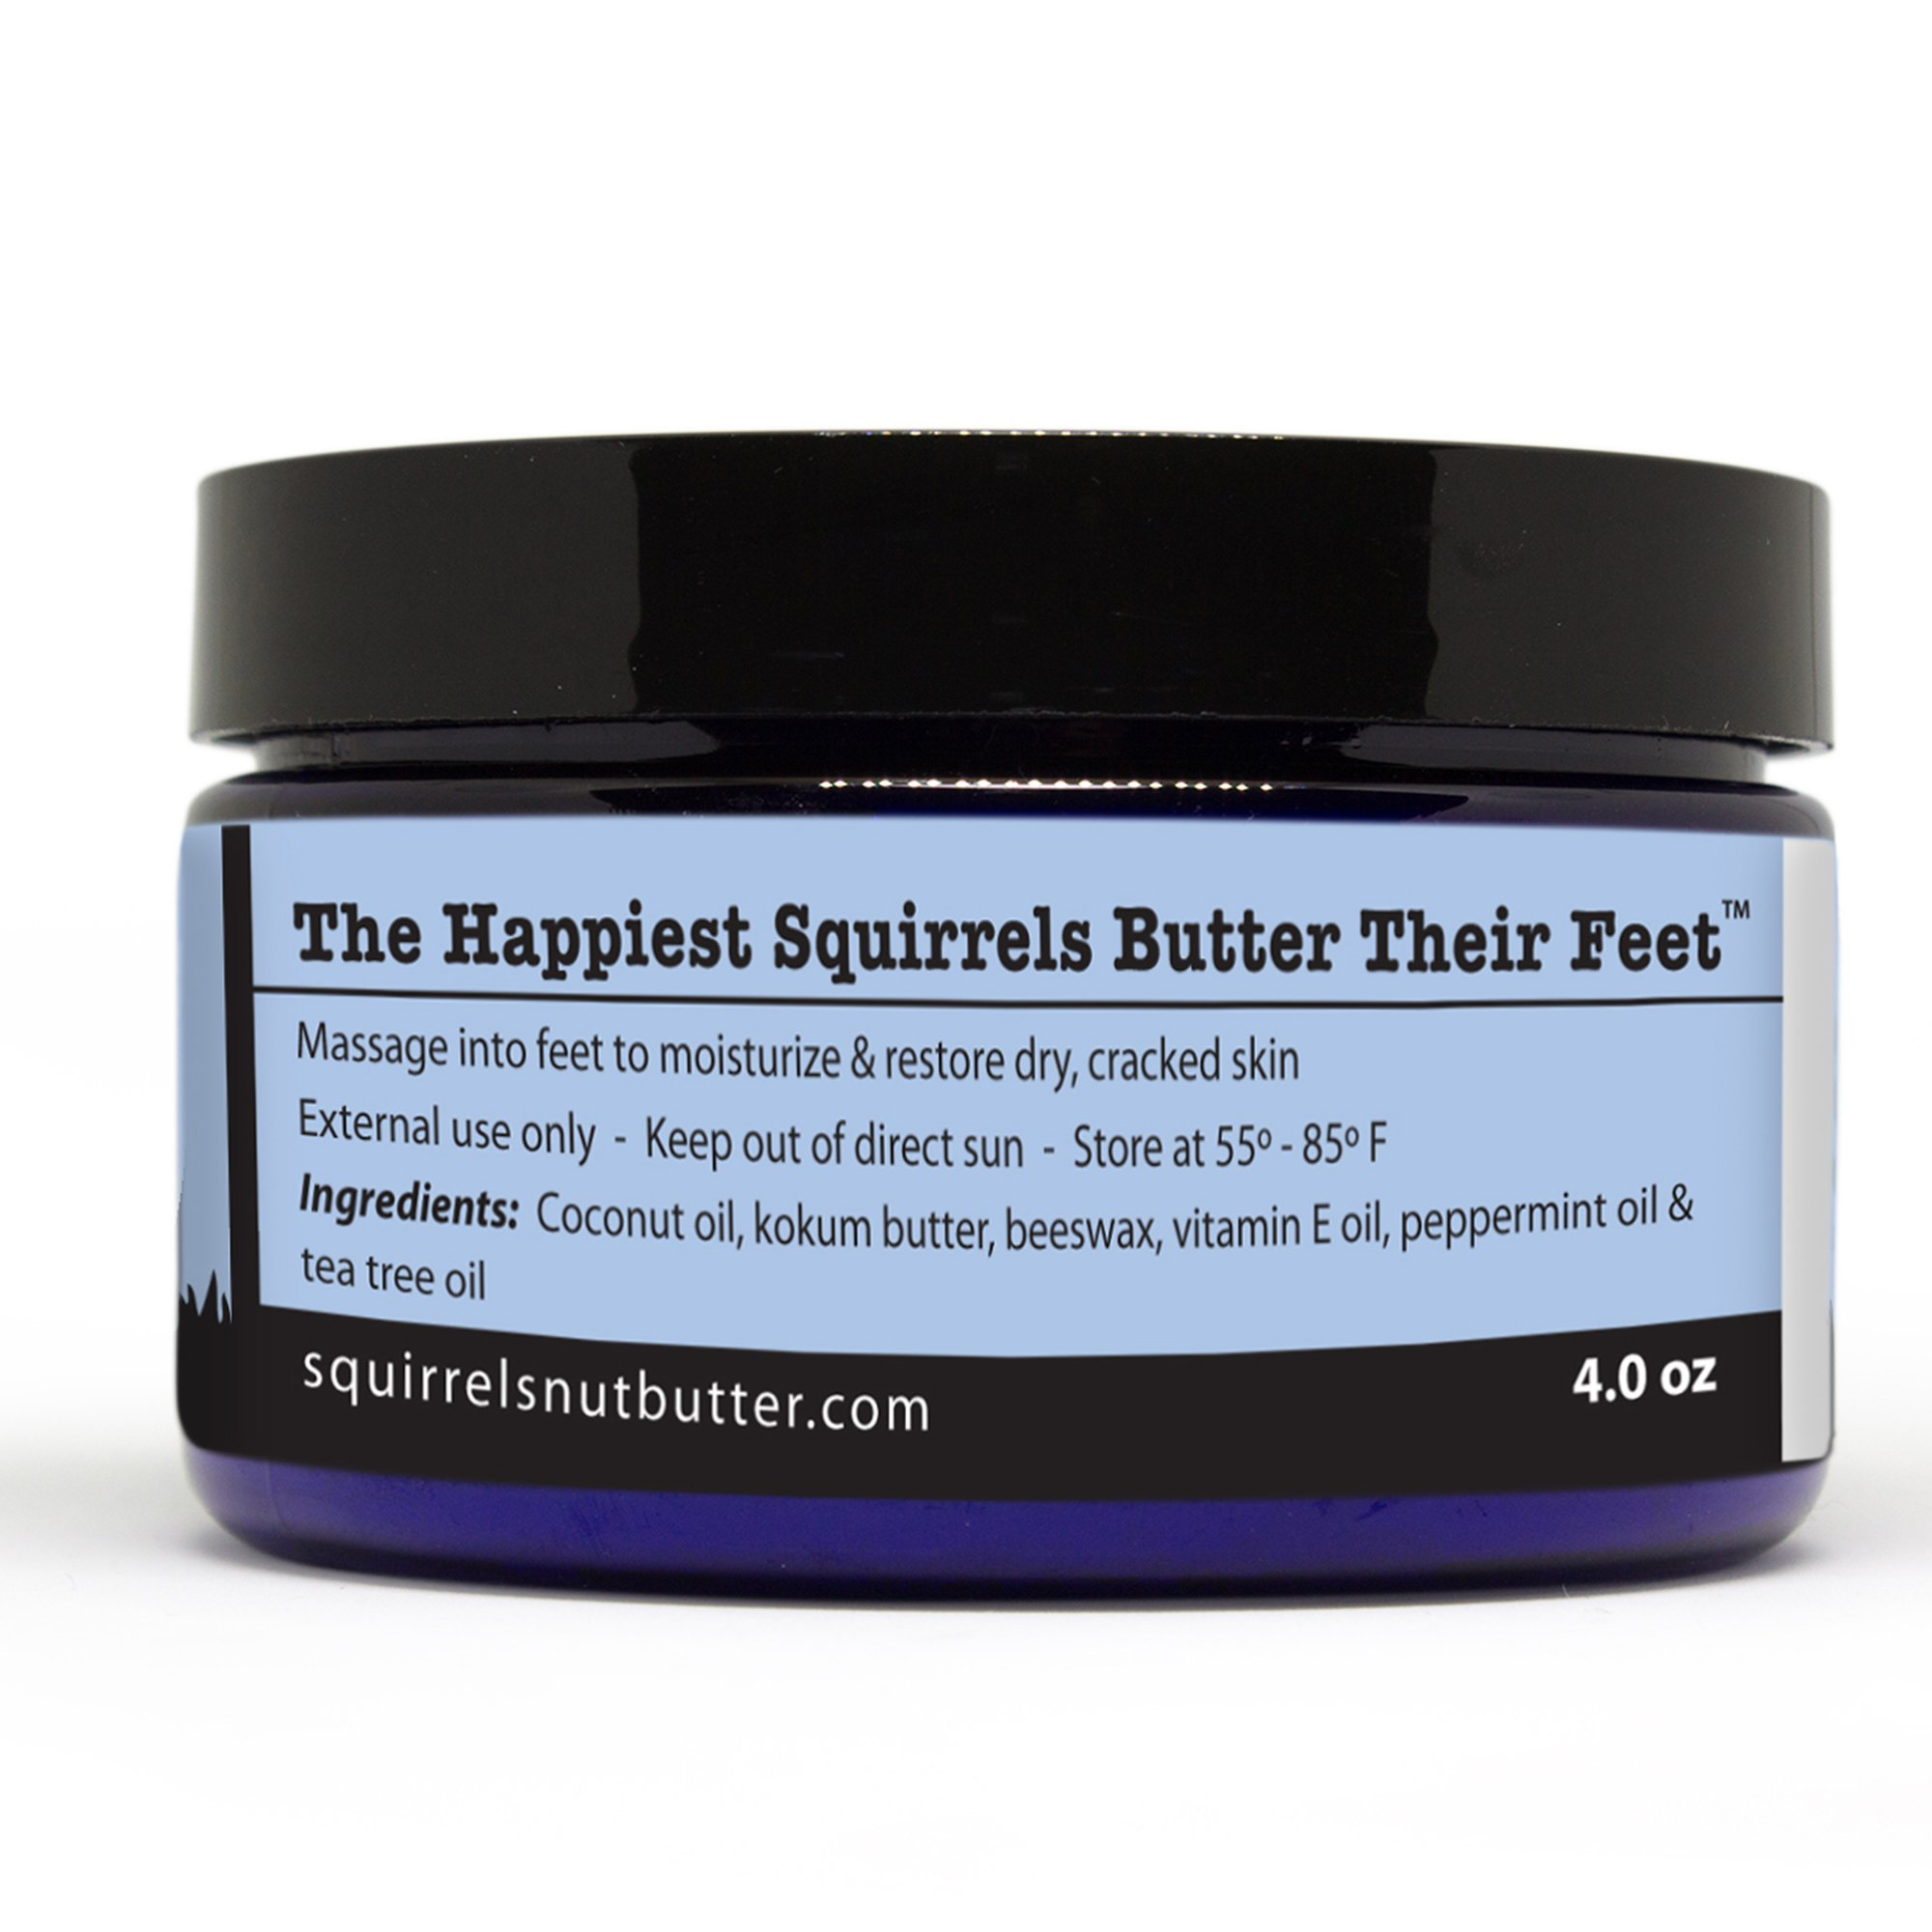 Squirrel's Nut Butter Happy Toes All Natural Foot Salve, Tub, 4.0 oz, Peppermint & Tea Tree by Squirrel's Nut Butter (Image #1)